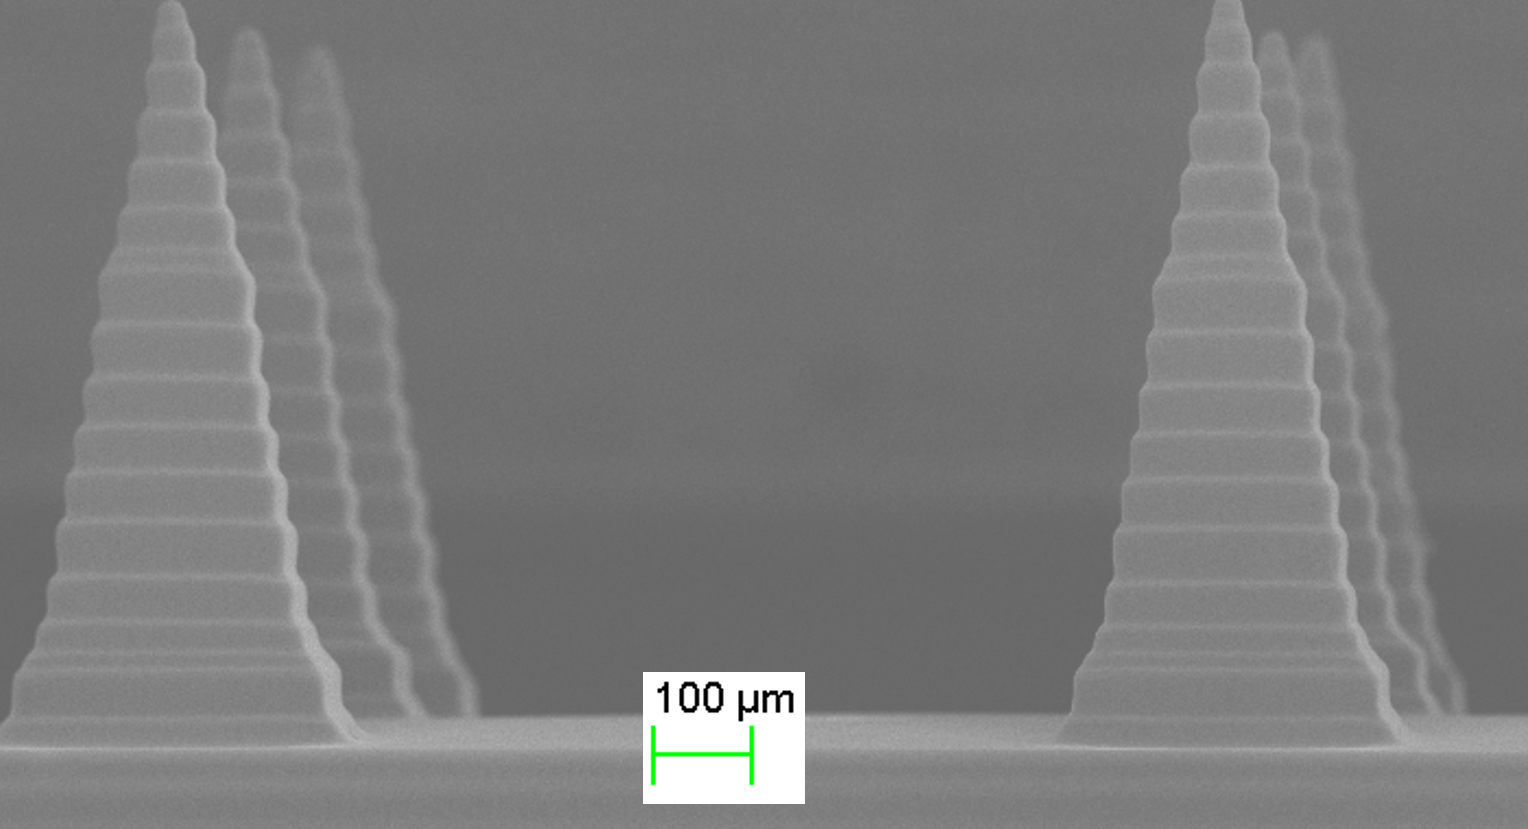 SEM pictures of the 3D-printed microneedles. The tip is 2um wide.